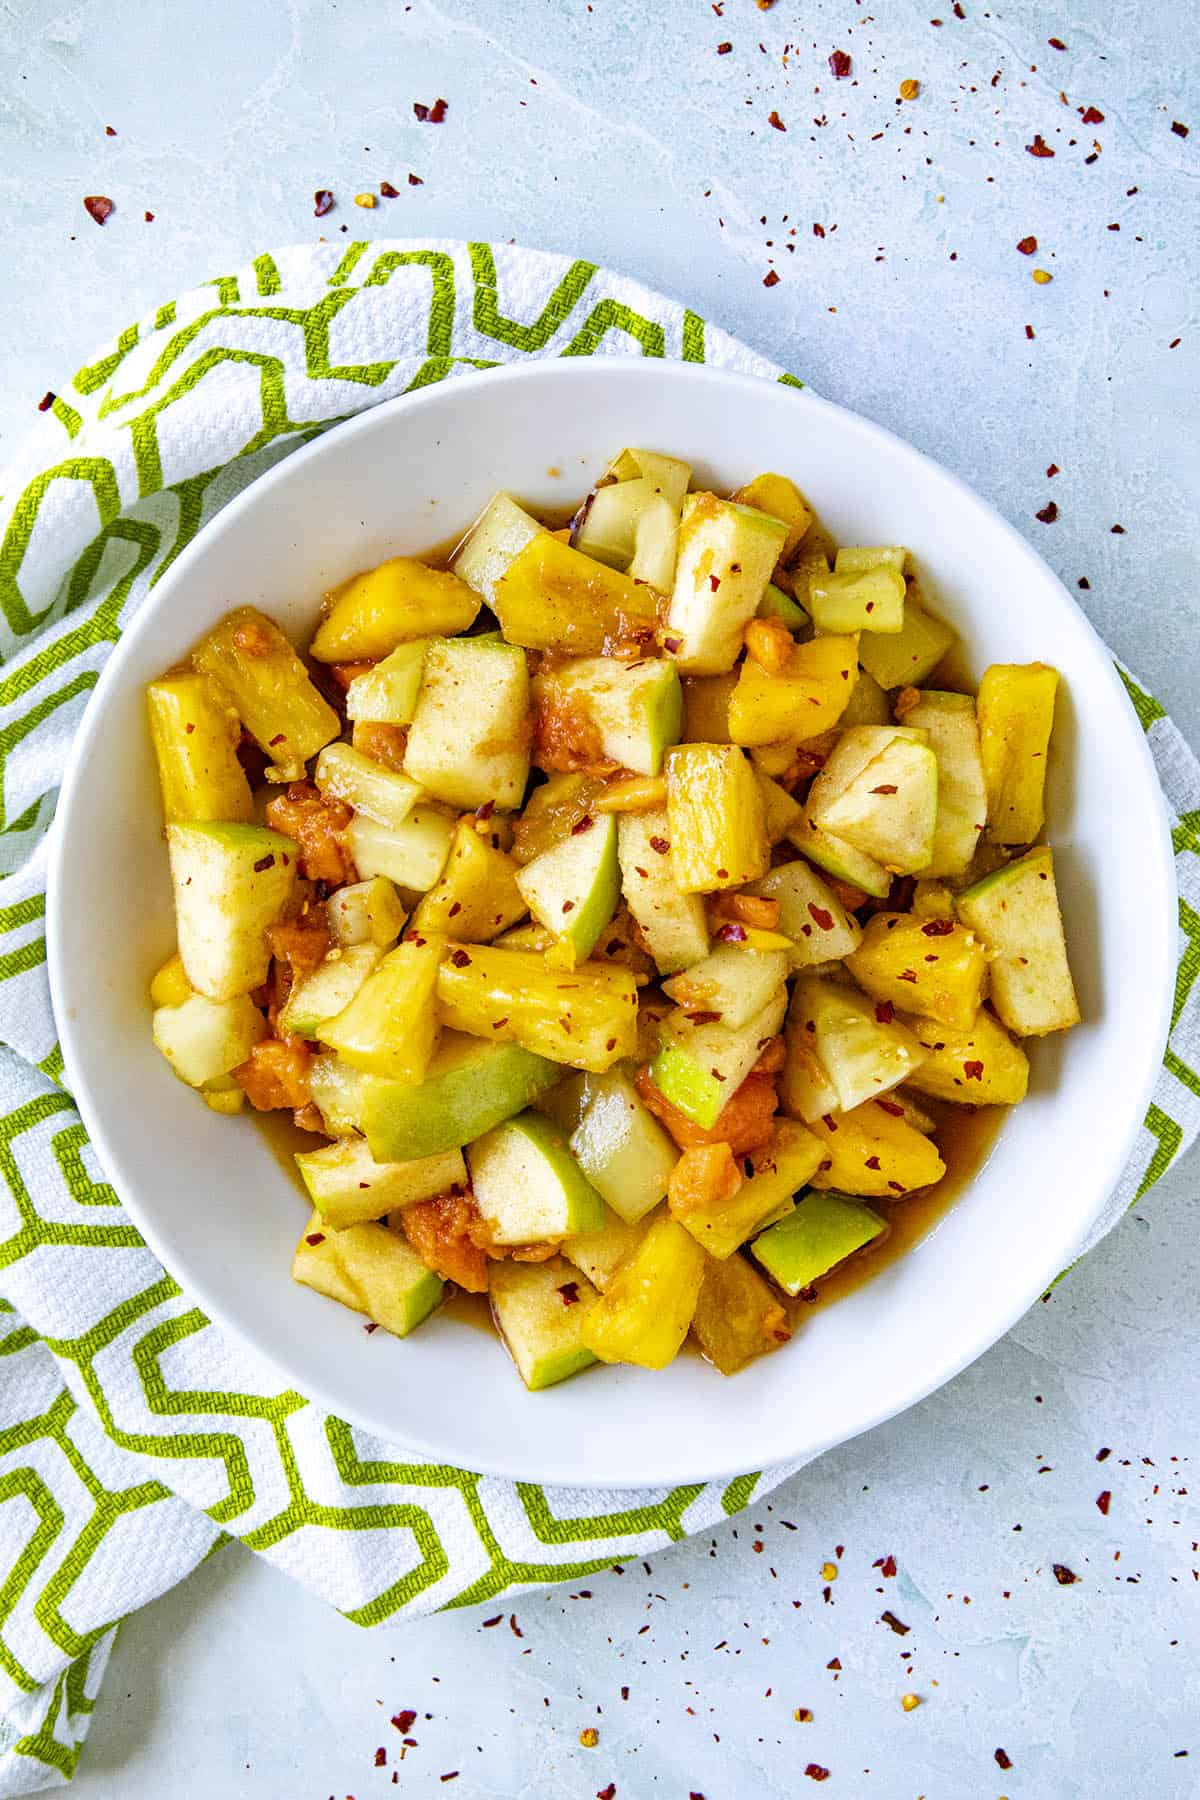 Rujak (Indonesian fruit salad) in a bowl